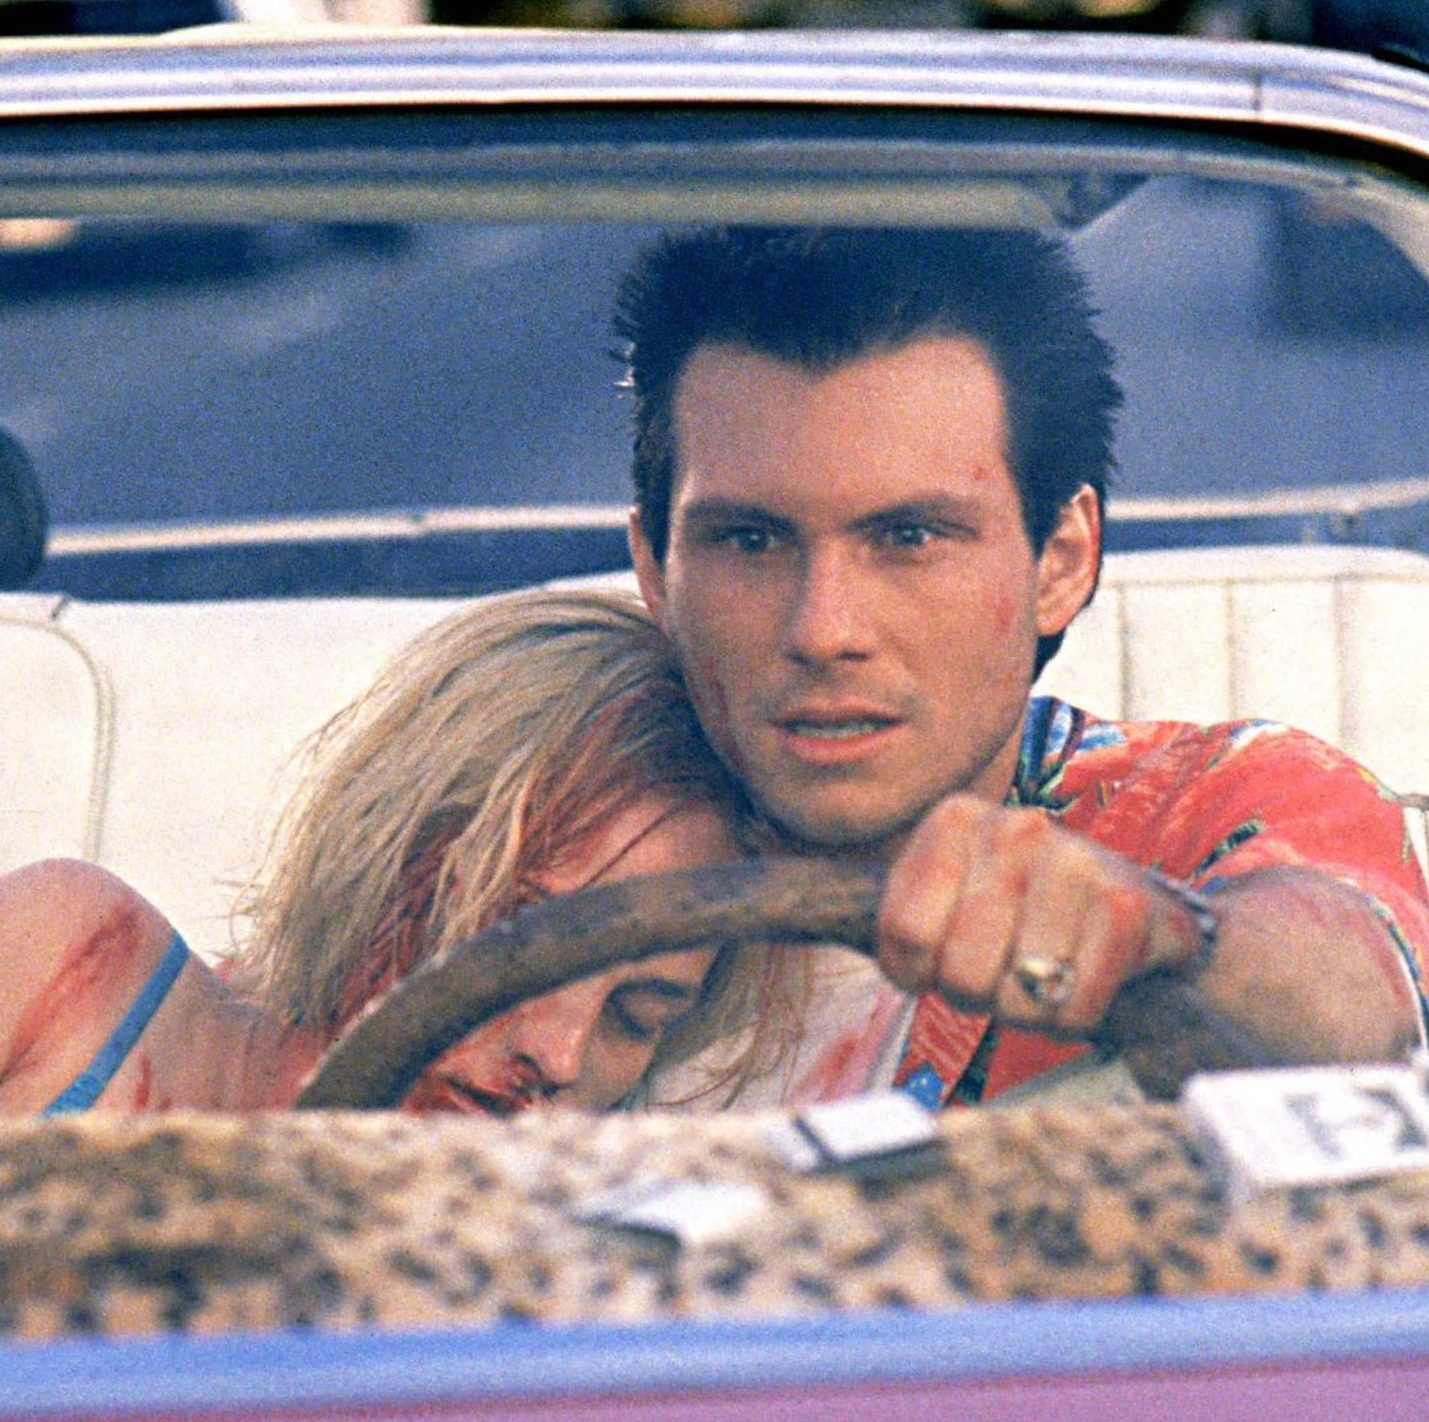 true romance desktop wallpaper e1600185573557 20 Things You Didn't Know About The Classic Film True Romance